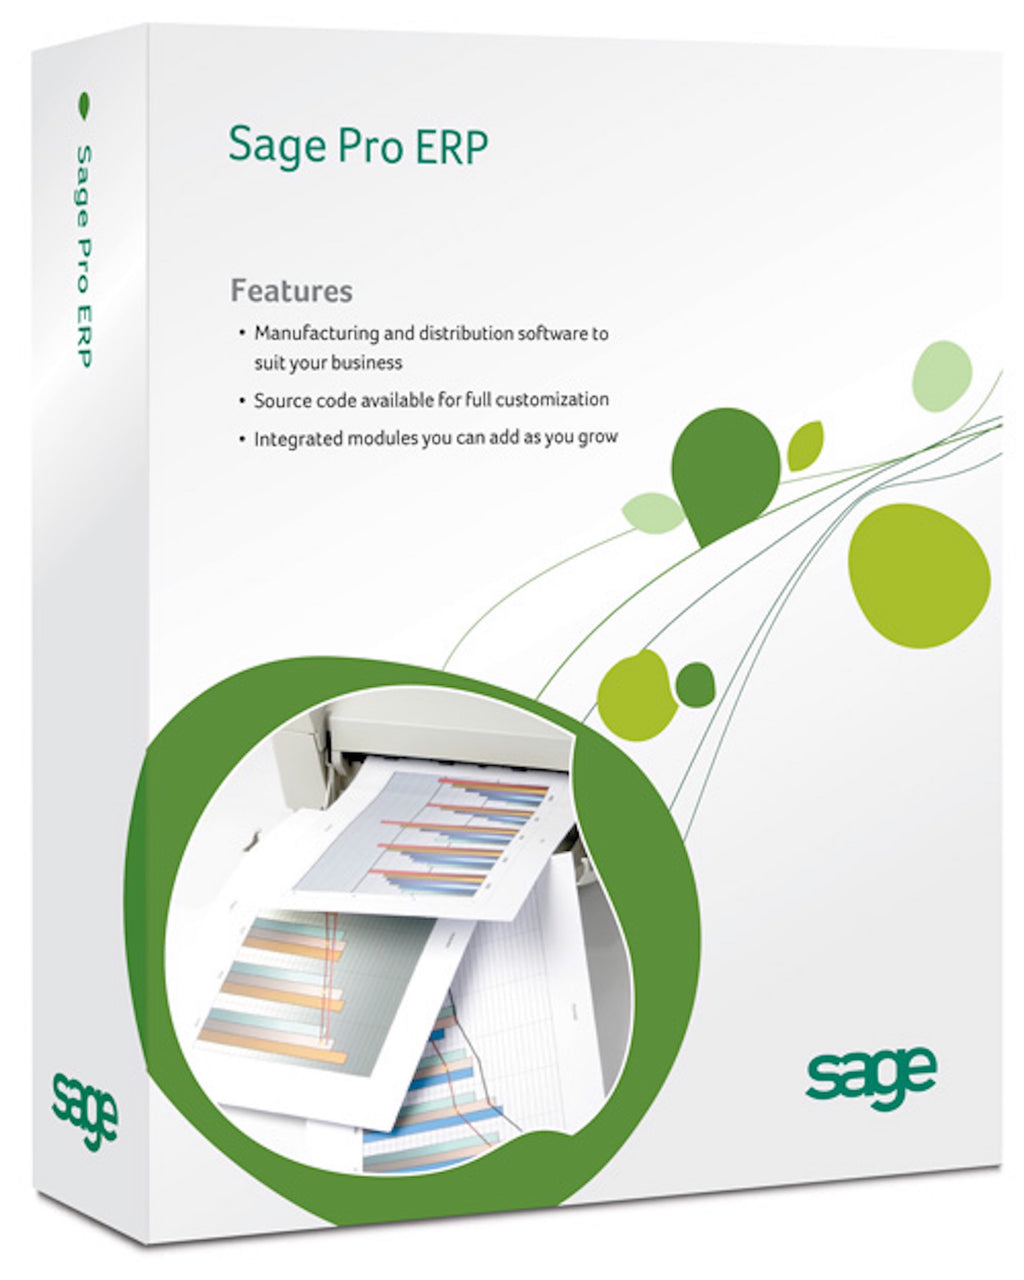 Sage Pro software applications help